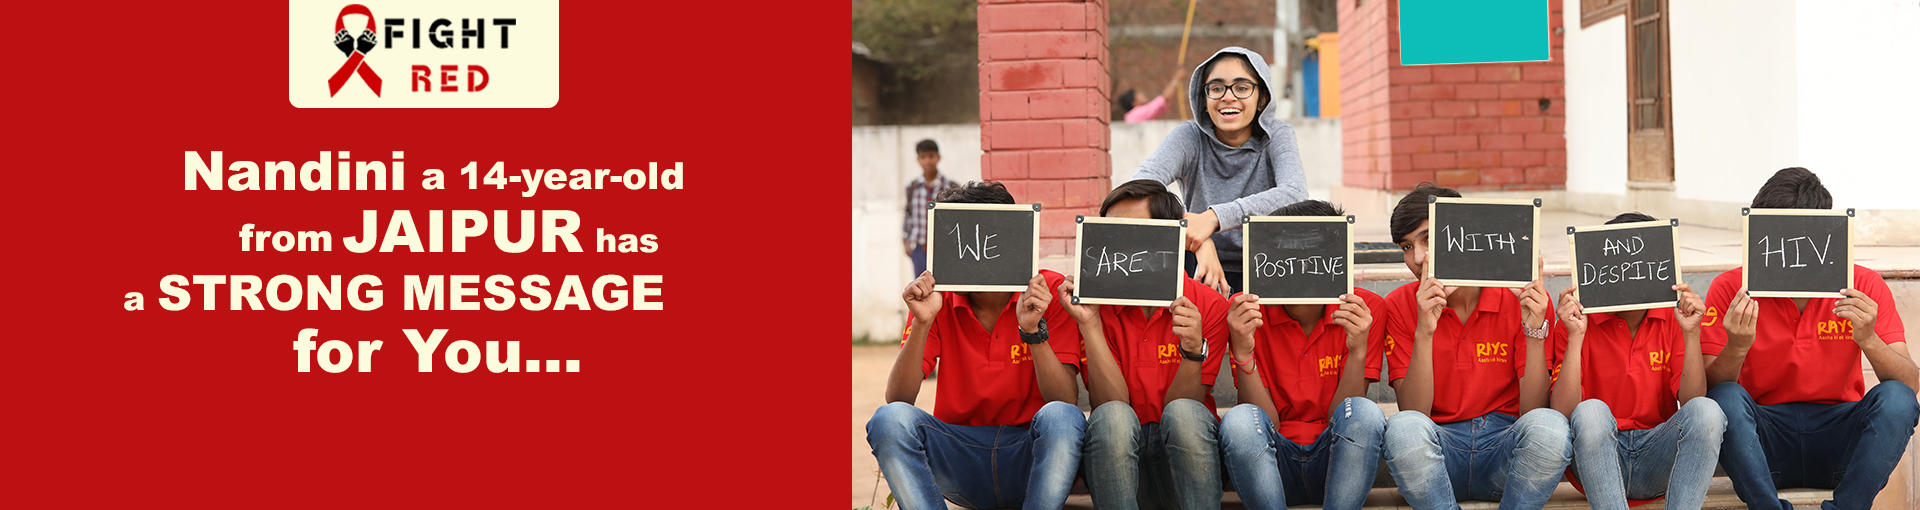 FightRed an initiative by Nandini Kuchhal an attempt to help children living with HIV/AIDS